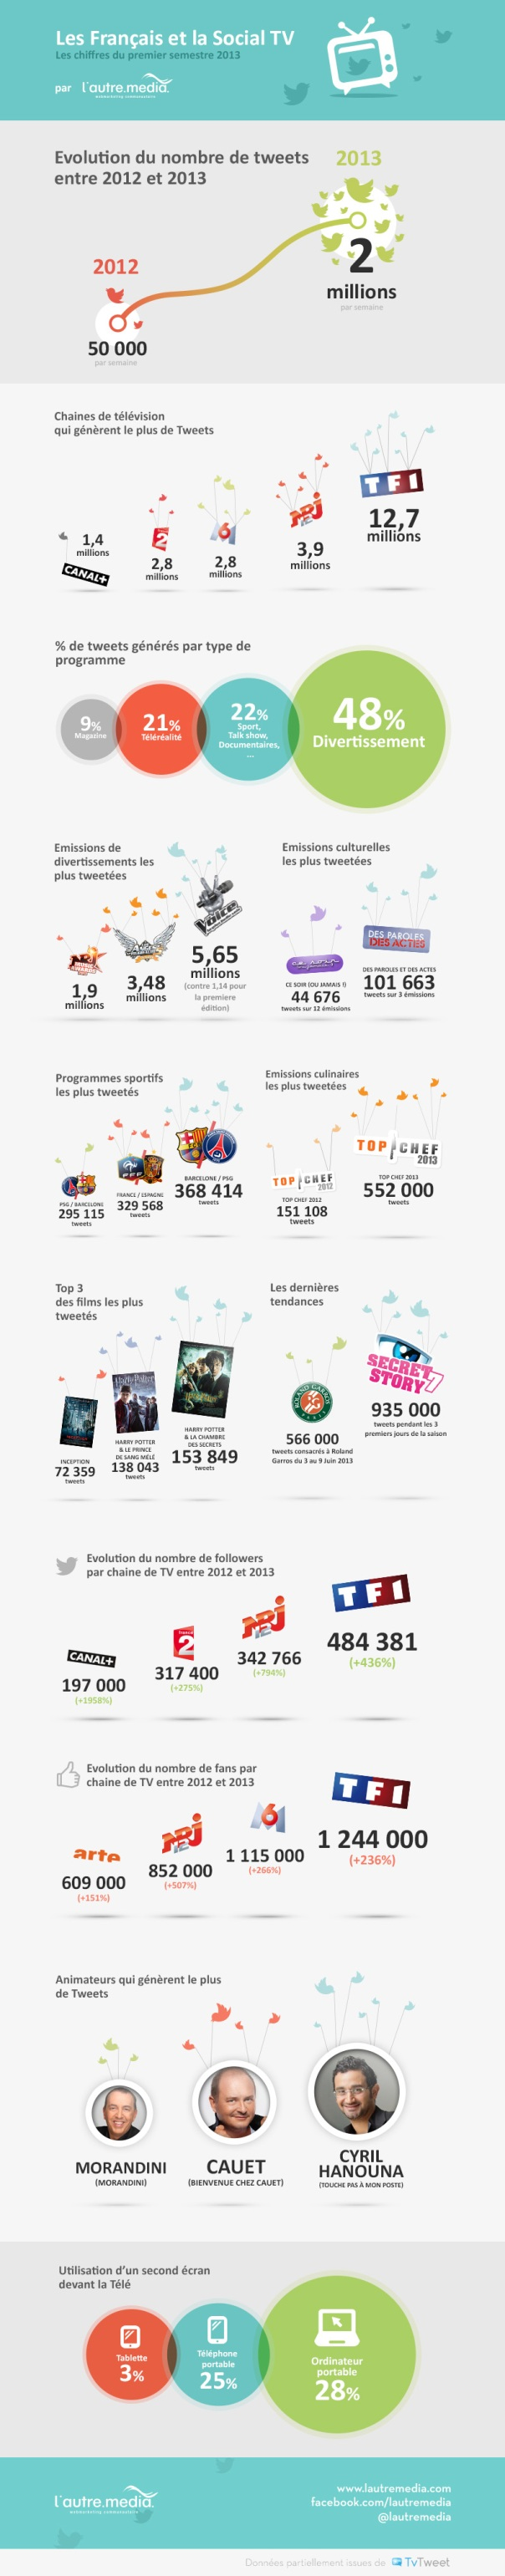 Infographie-Social-TV-2